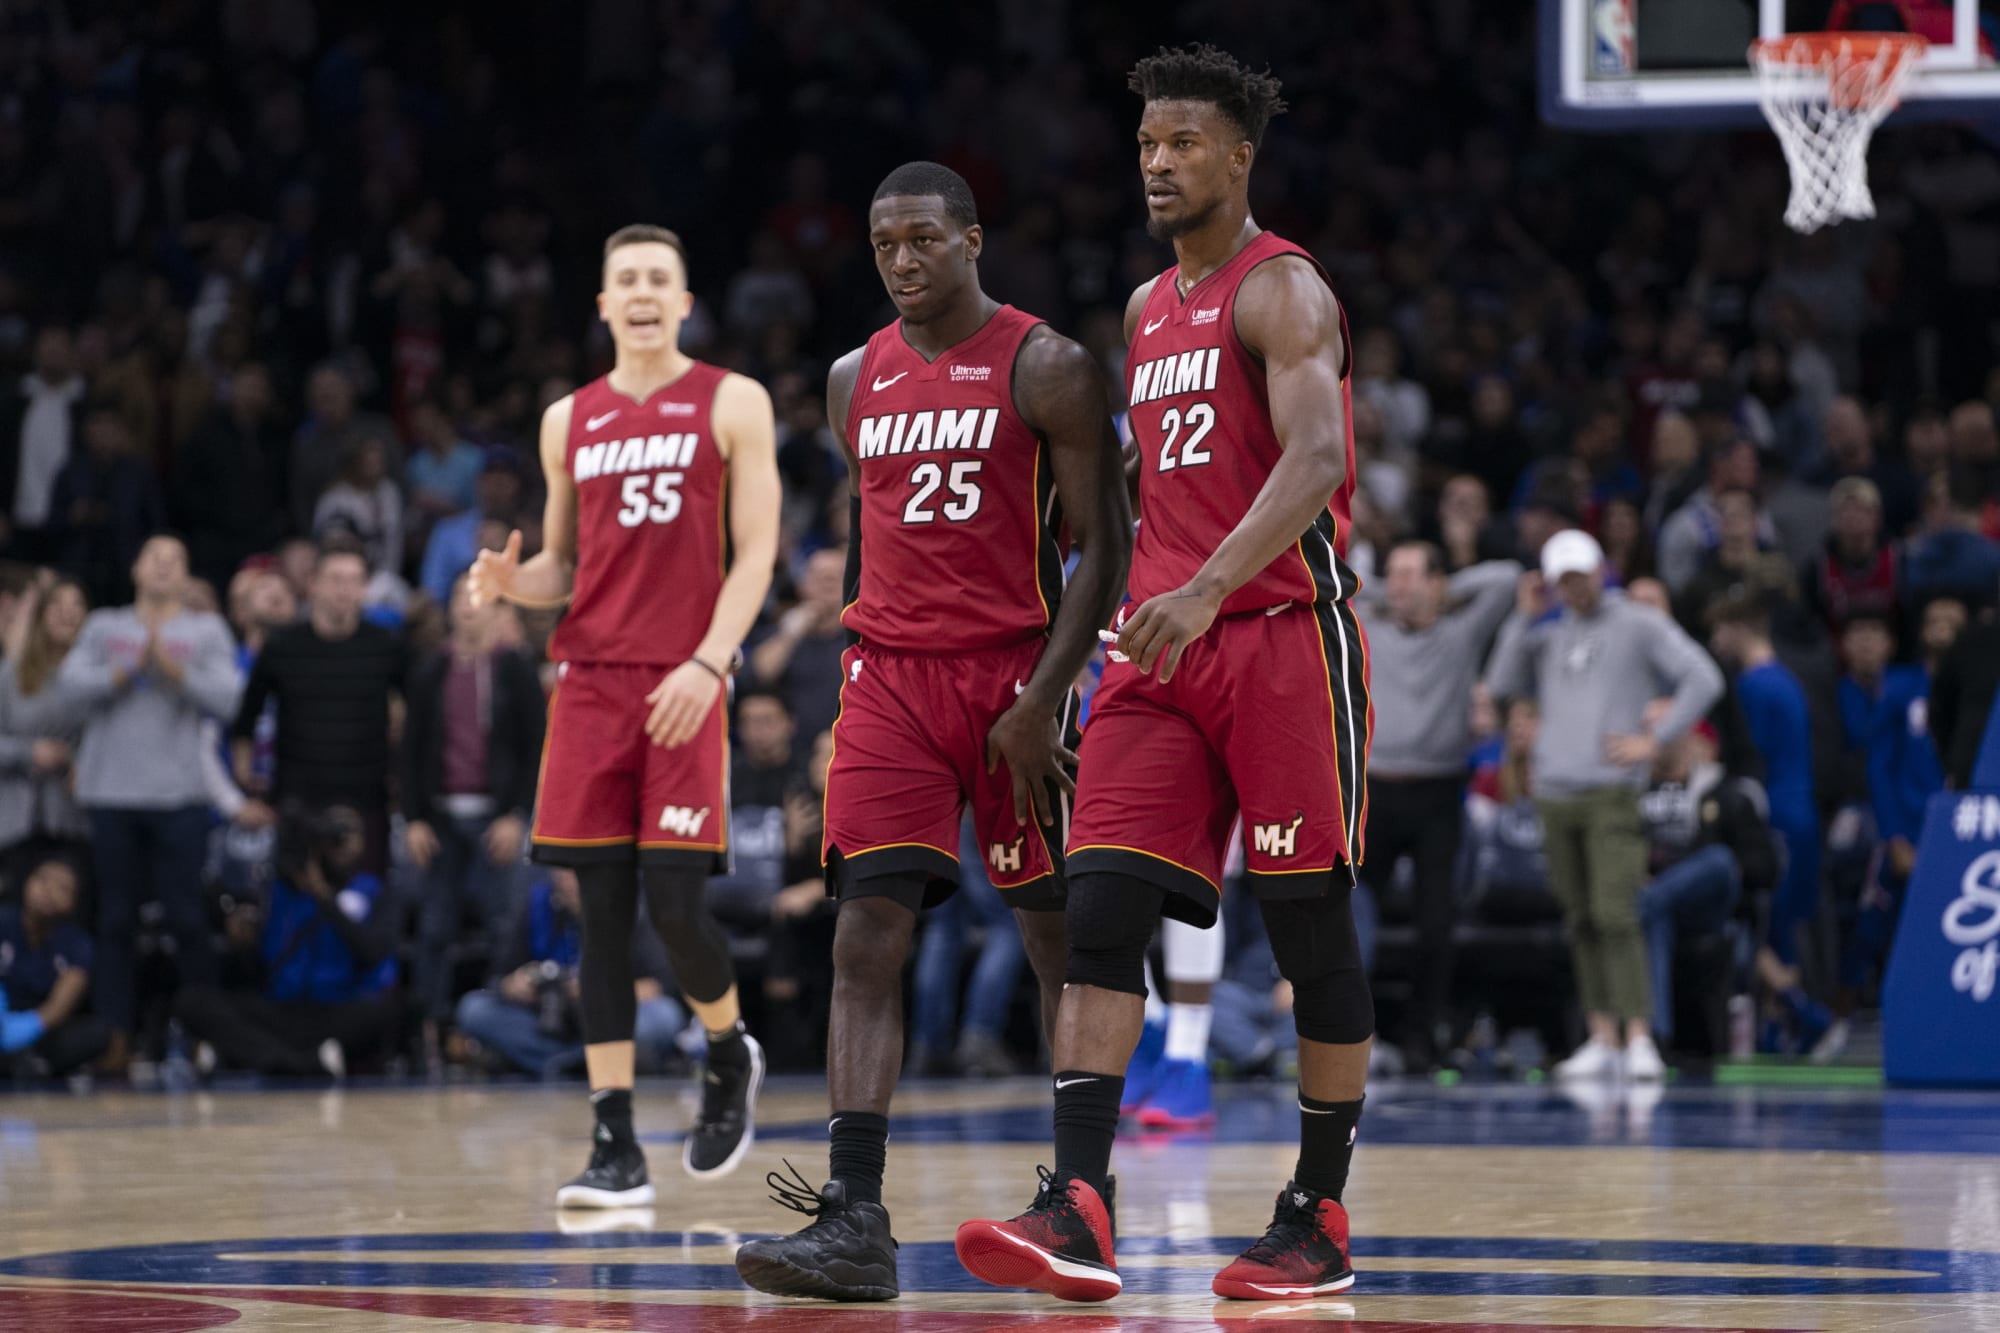 Miami Heat: There's reason to be cautiously optimistic about playoffs